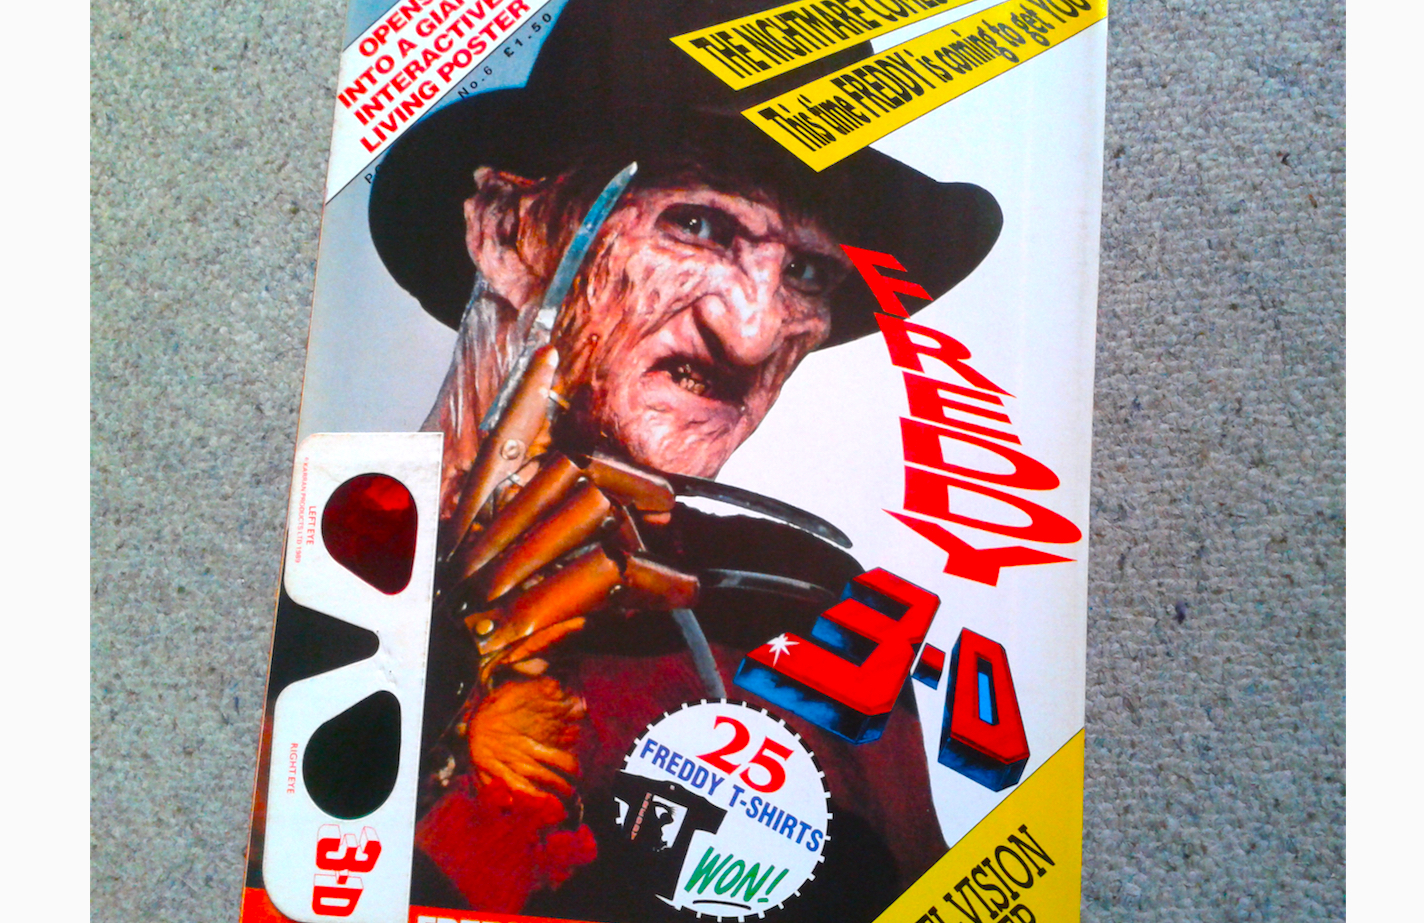 Freddy Krueger 3D Uk Poster Magazine - Halloween Love Review